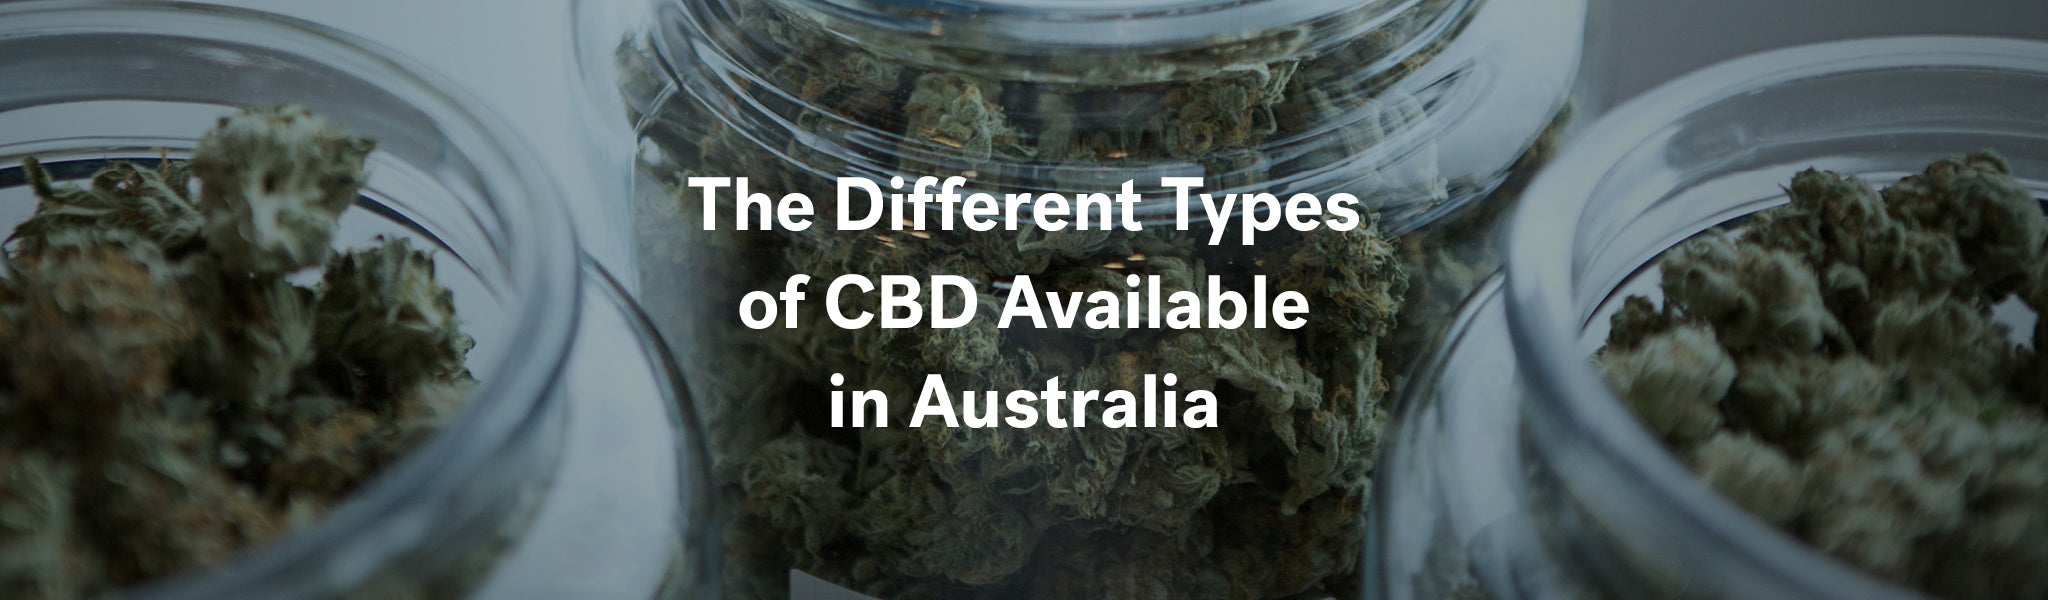 Different Types of CBD in Australia